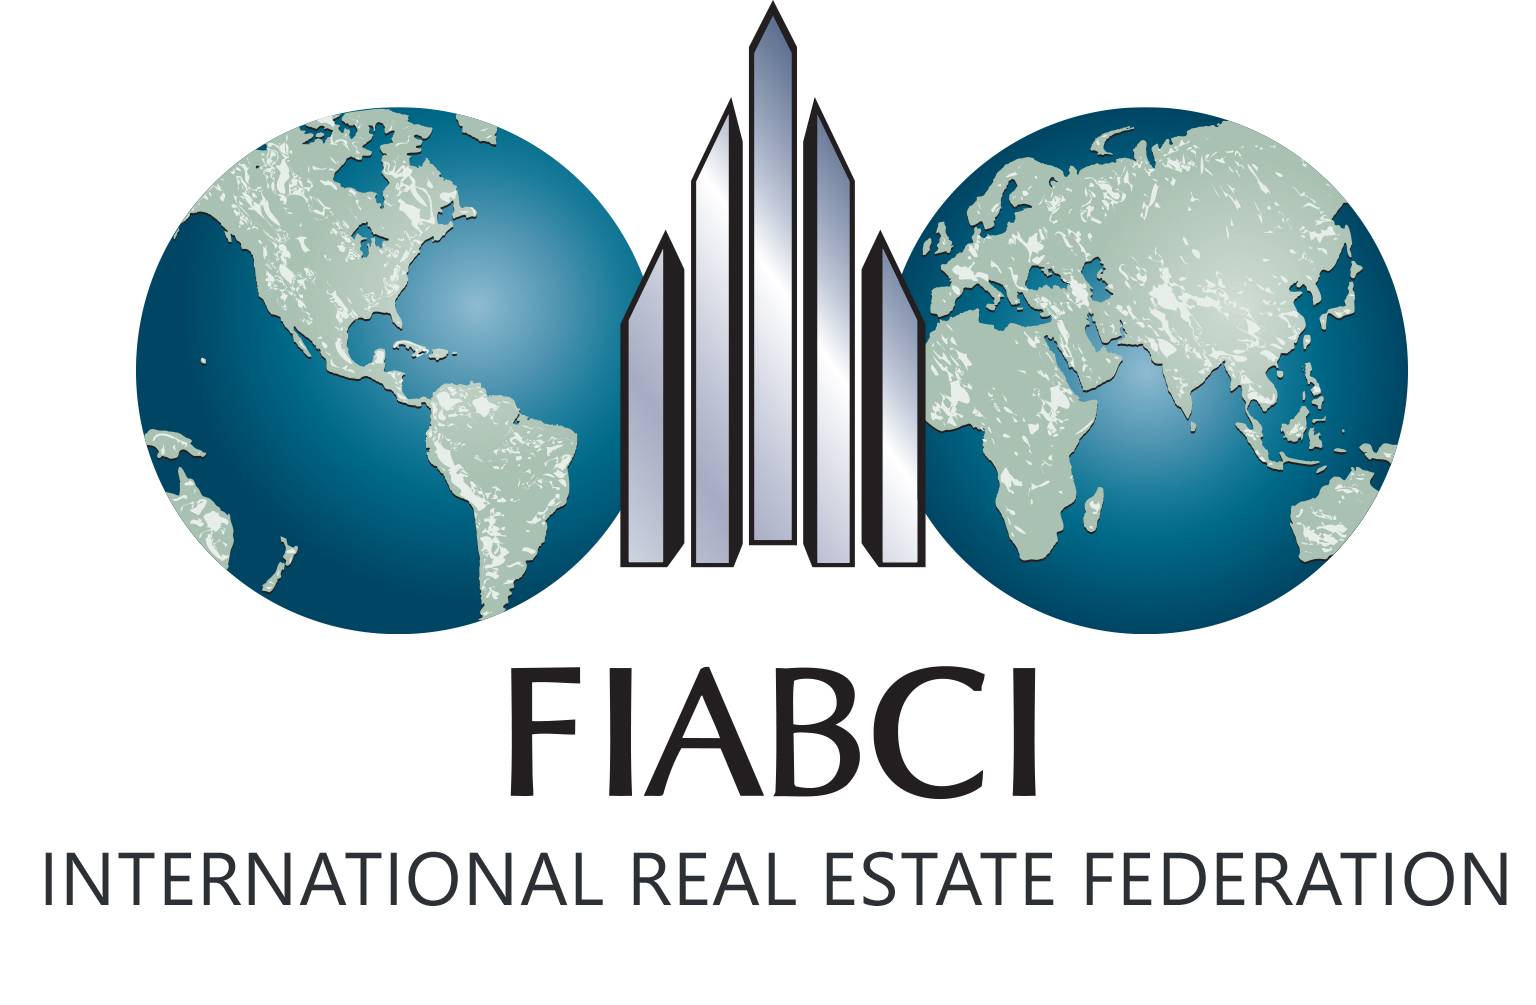 International Real Estate Federation FIABCI